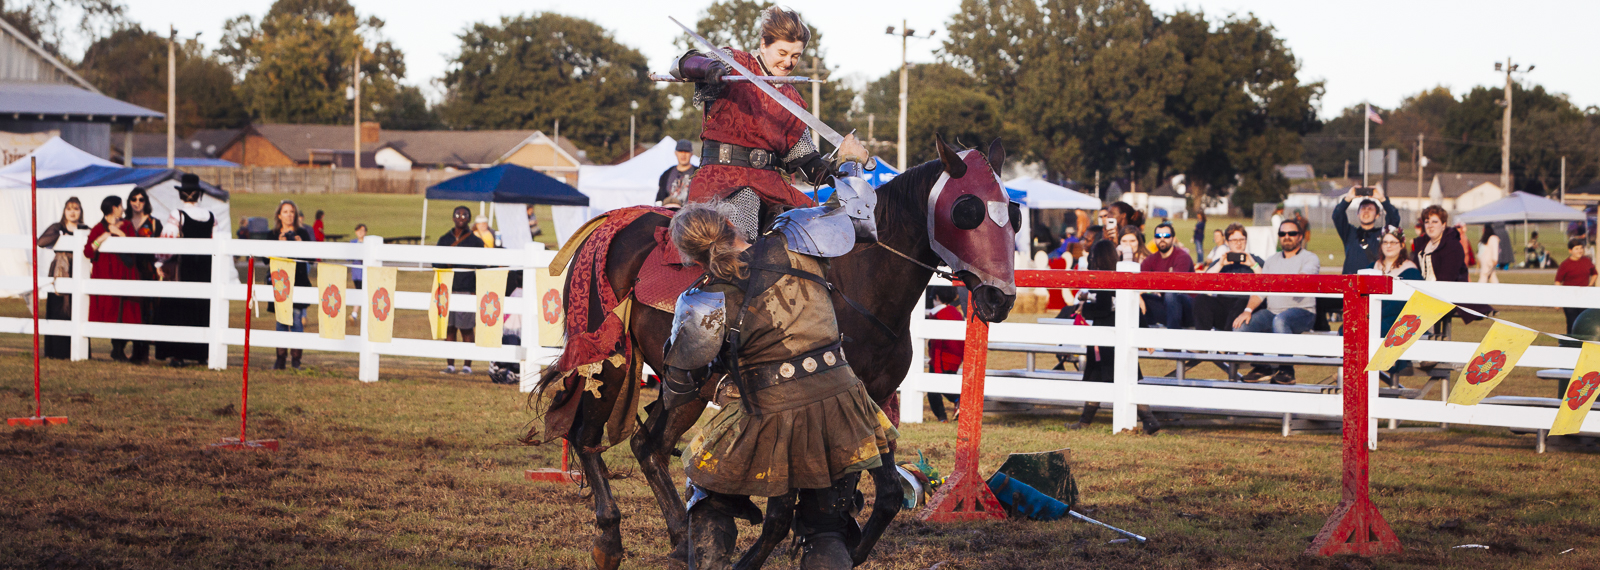 Knights joust at the 2018 Mid-South Renaissance Faire, held at the USA Baseball Stadium and Park in Millington, Tennessee. (Ziggy Mack)  <span class='image-credits'></span>